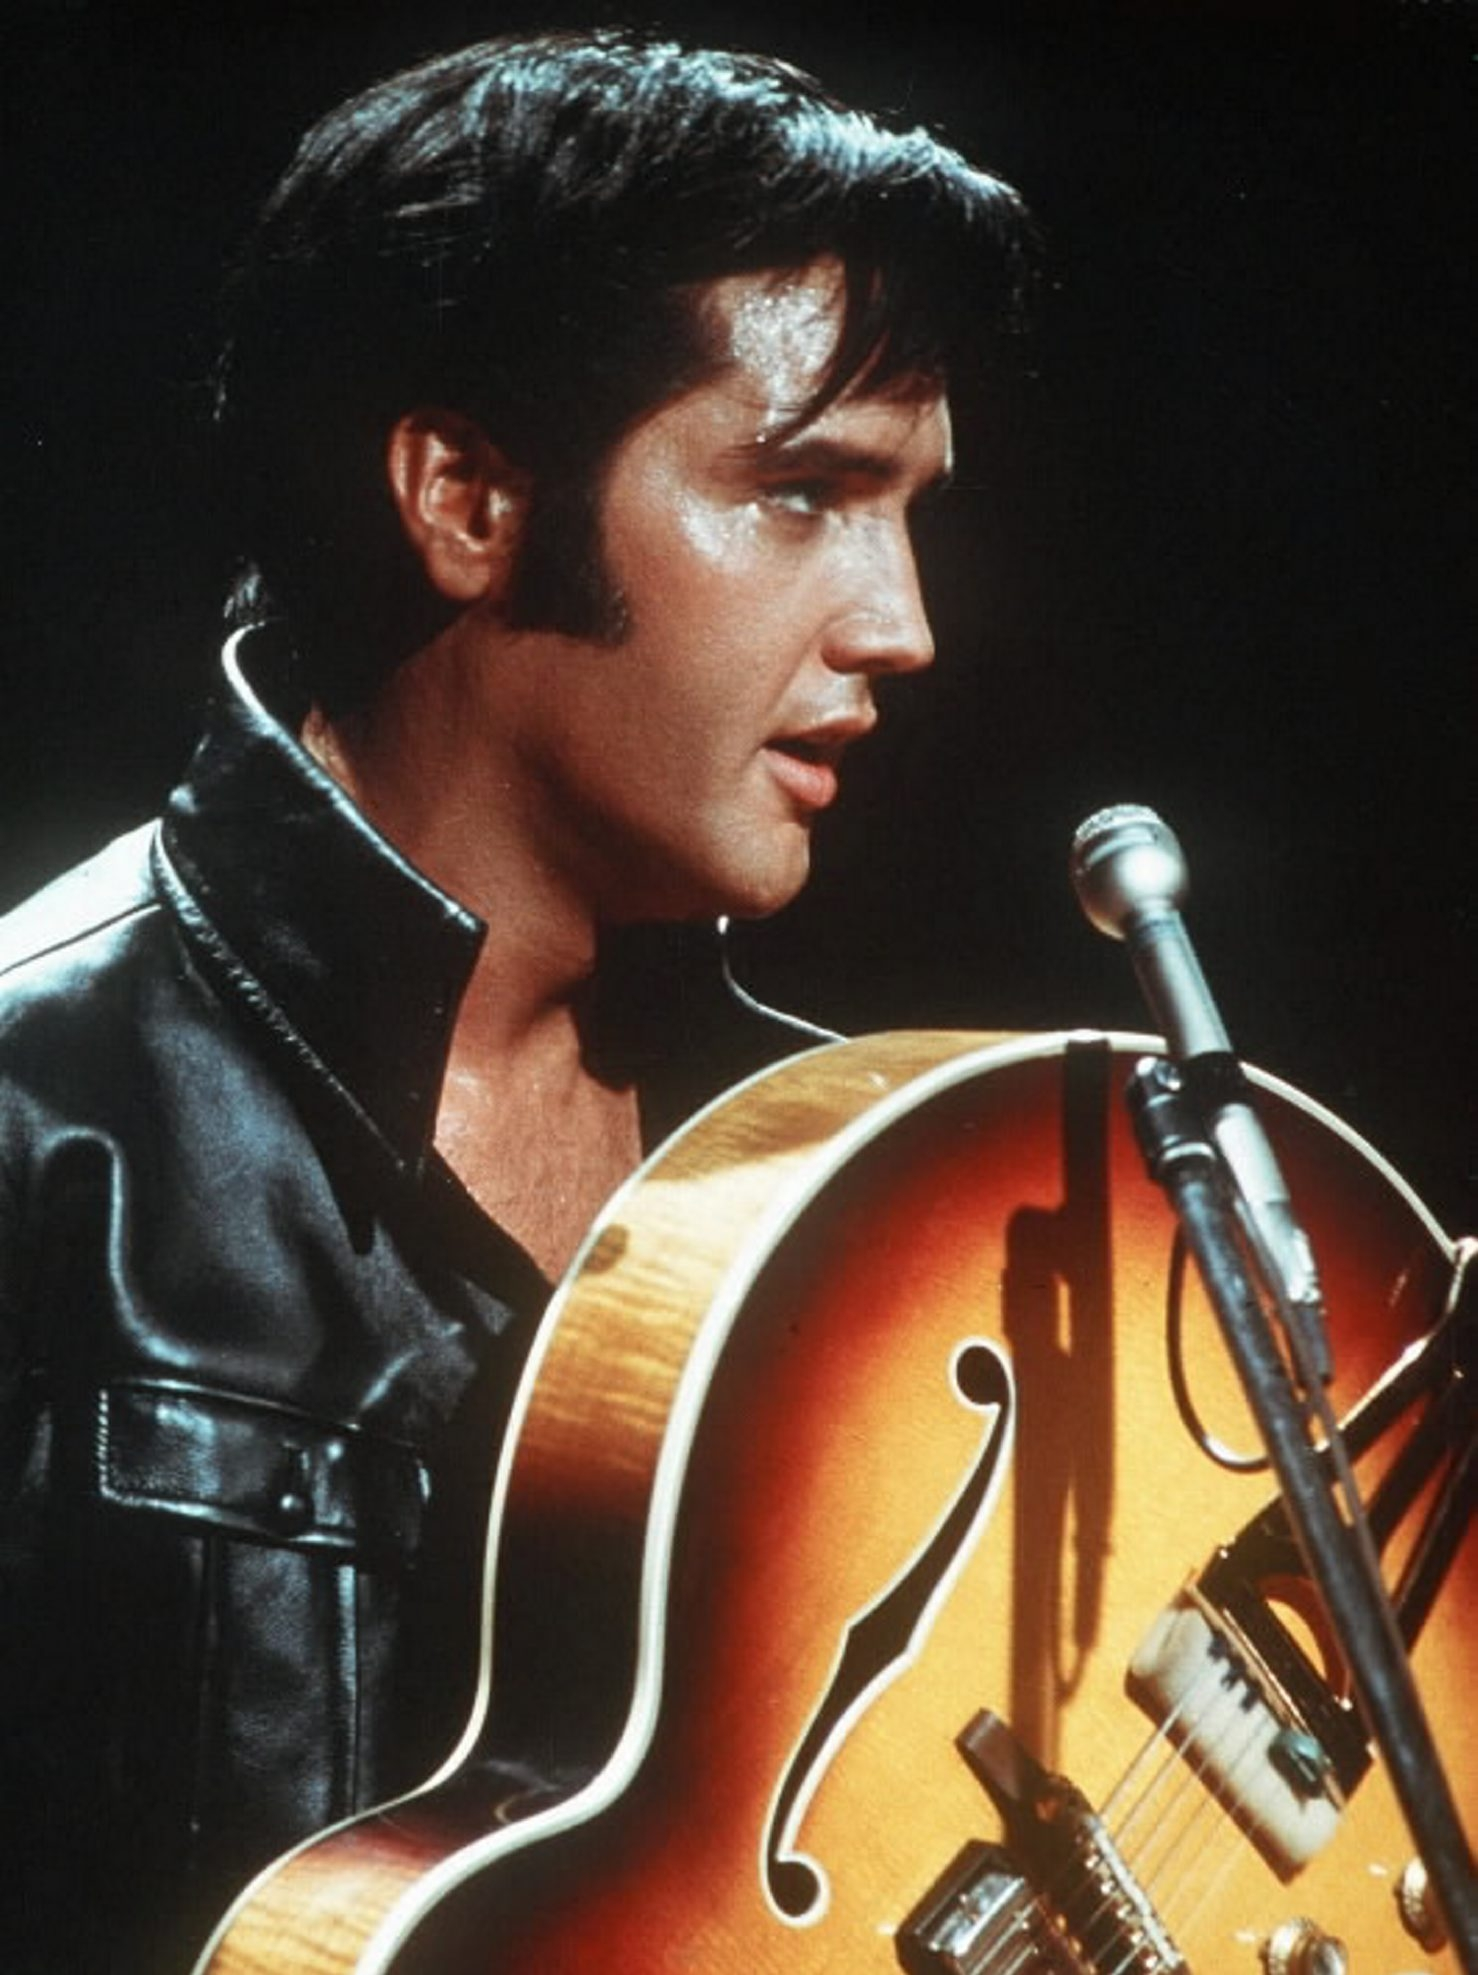 Two-disc set includes complete concert from Elvis Presley's 1970 summer season in Las Vegas.